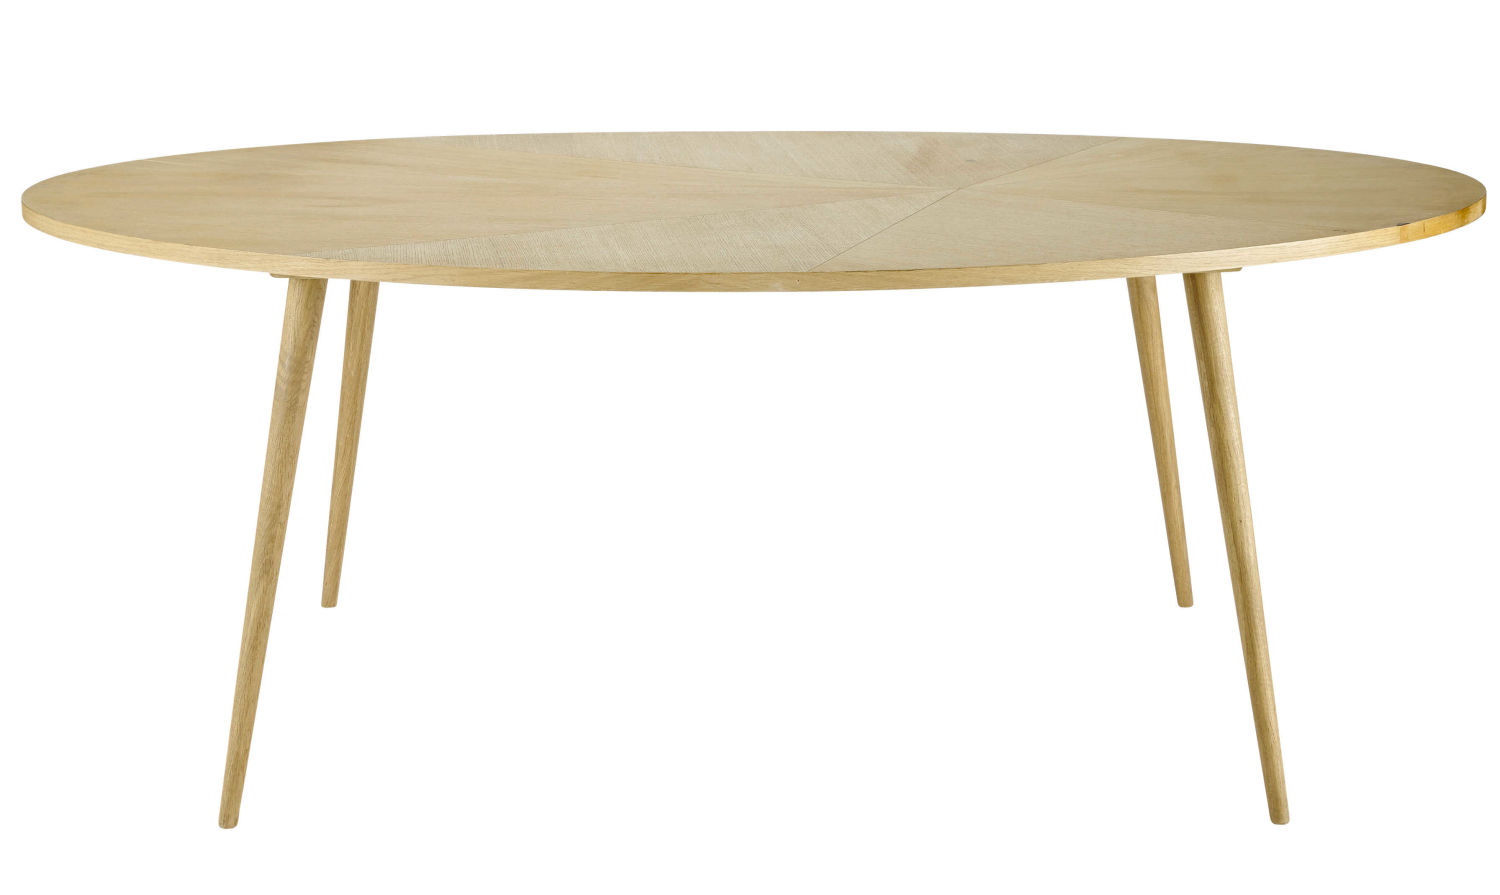 8 Seater Oval Dining Table L200 Maisons Du Monde